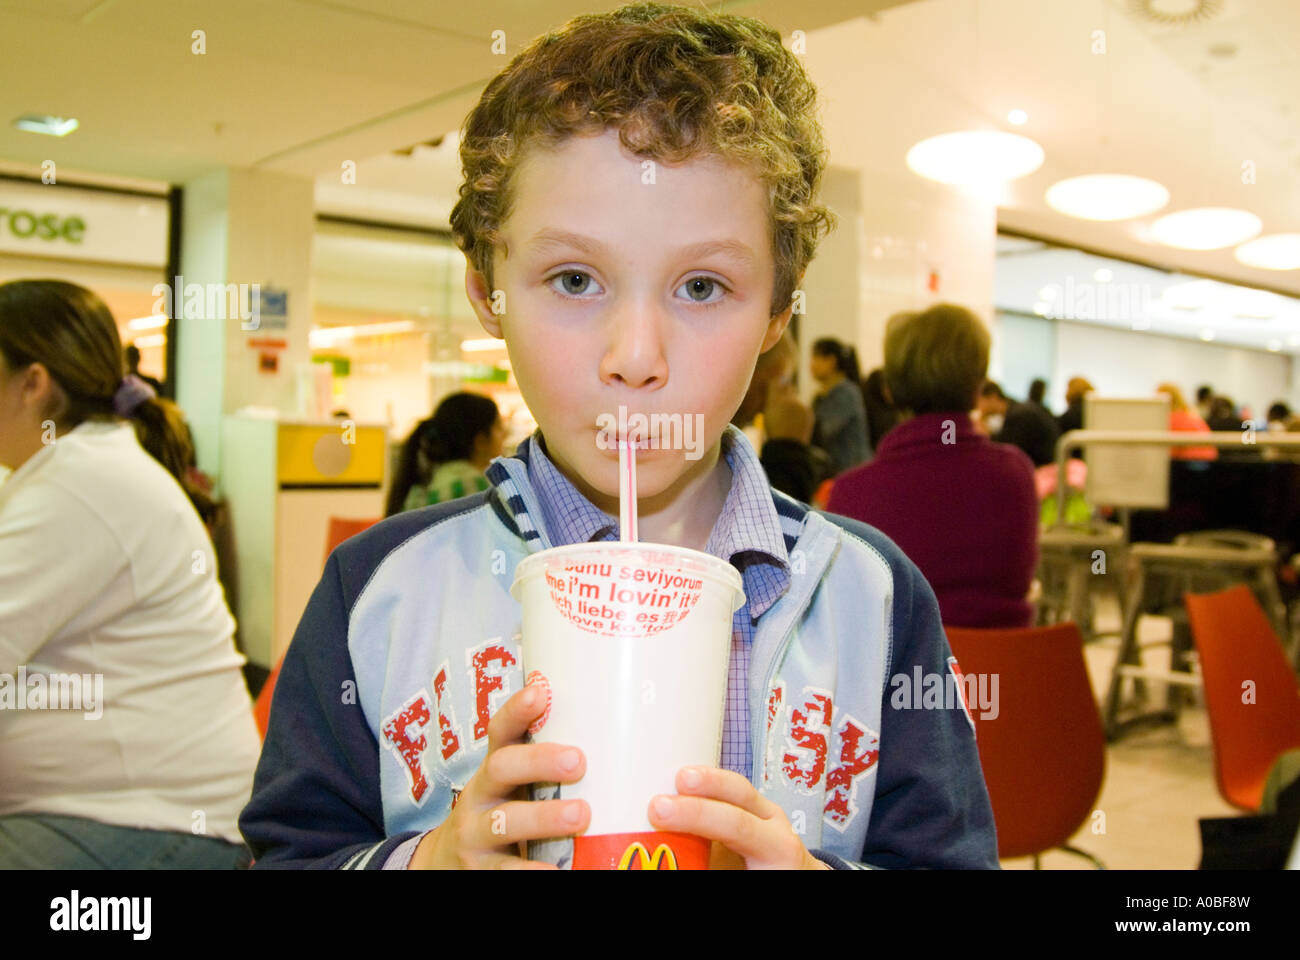 junk food and kids uk stock photos junk food and kids uk stock child drinking mcdonald s soft drink england uk stock image